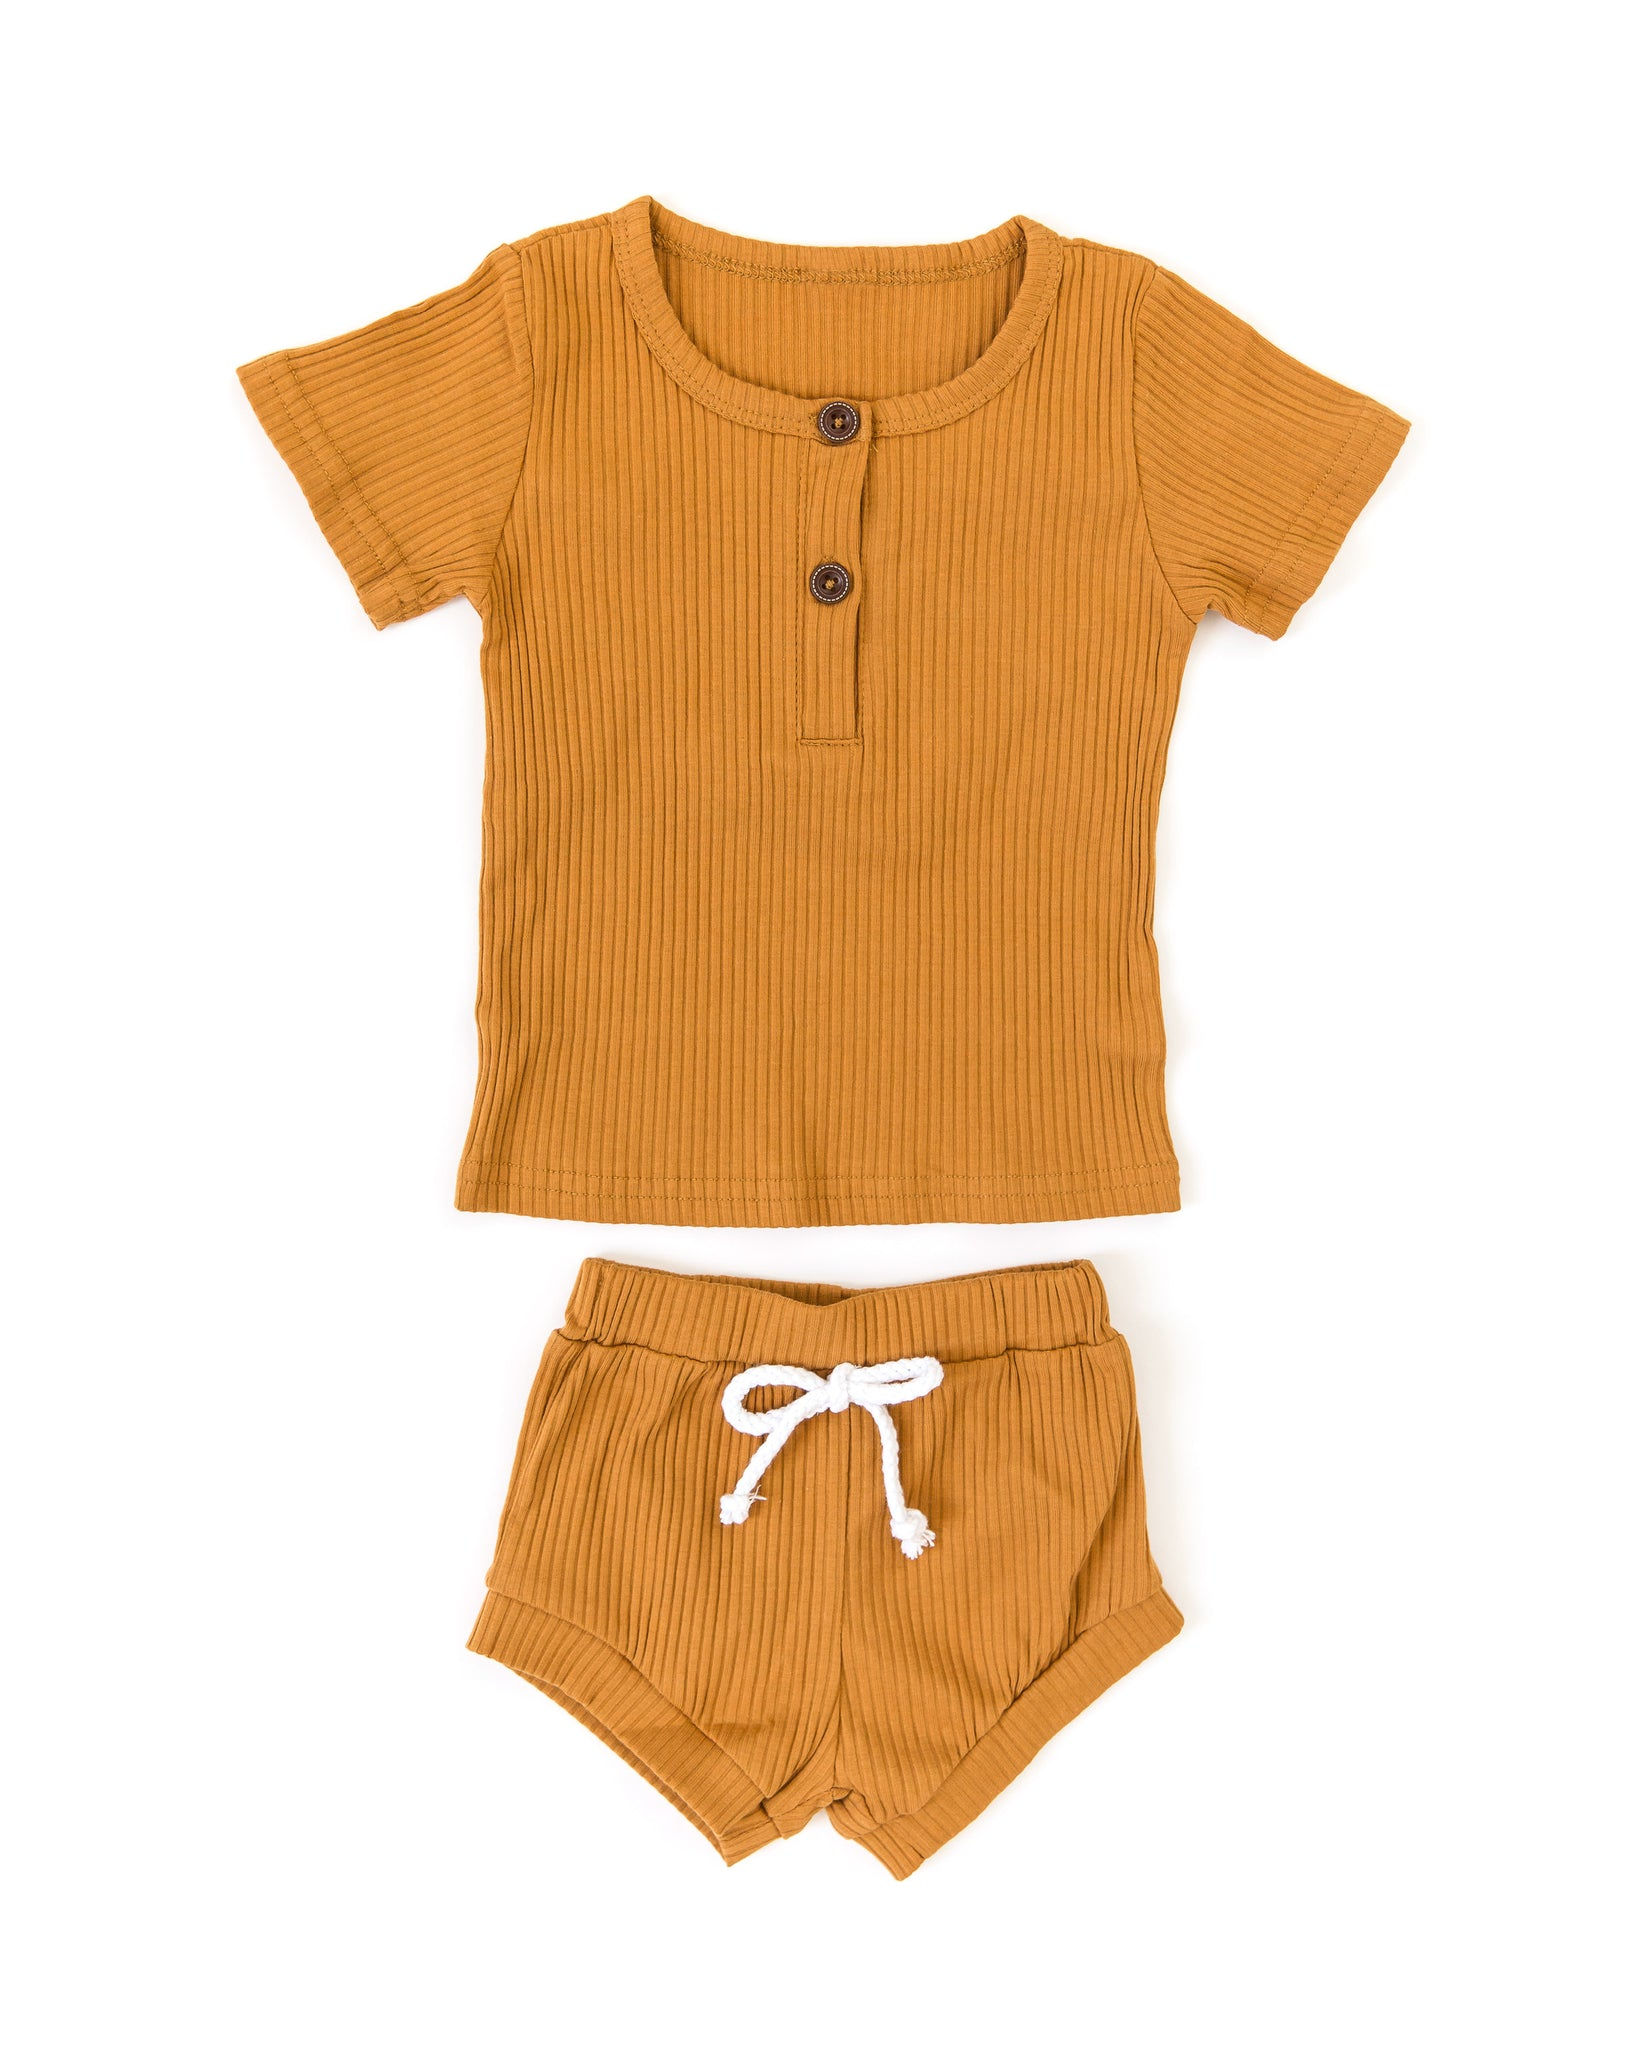 Andy Outfit in Burnt Orange - Reverie Threads